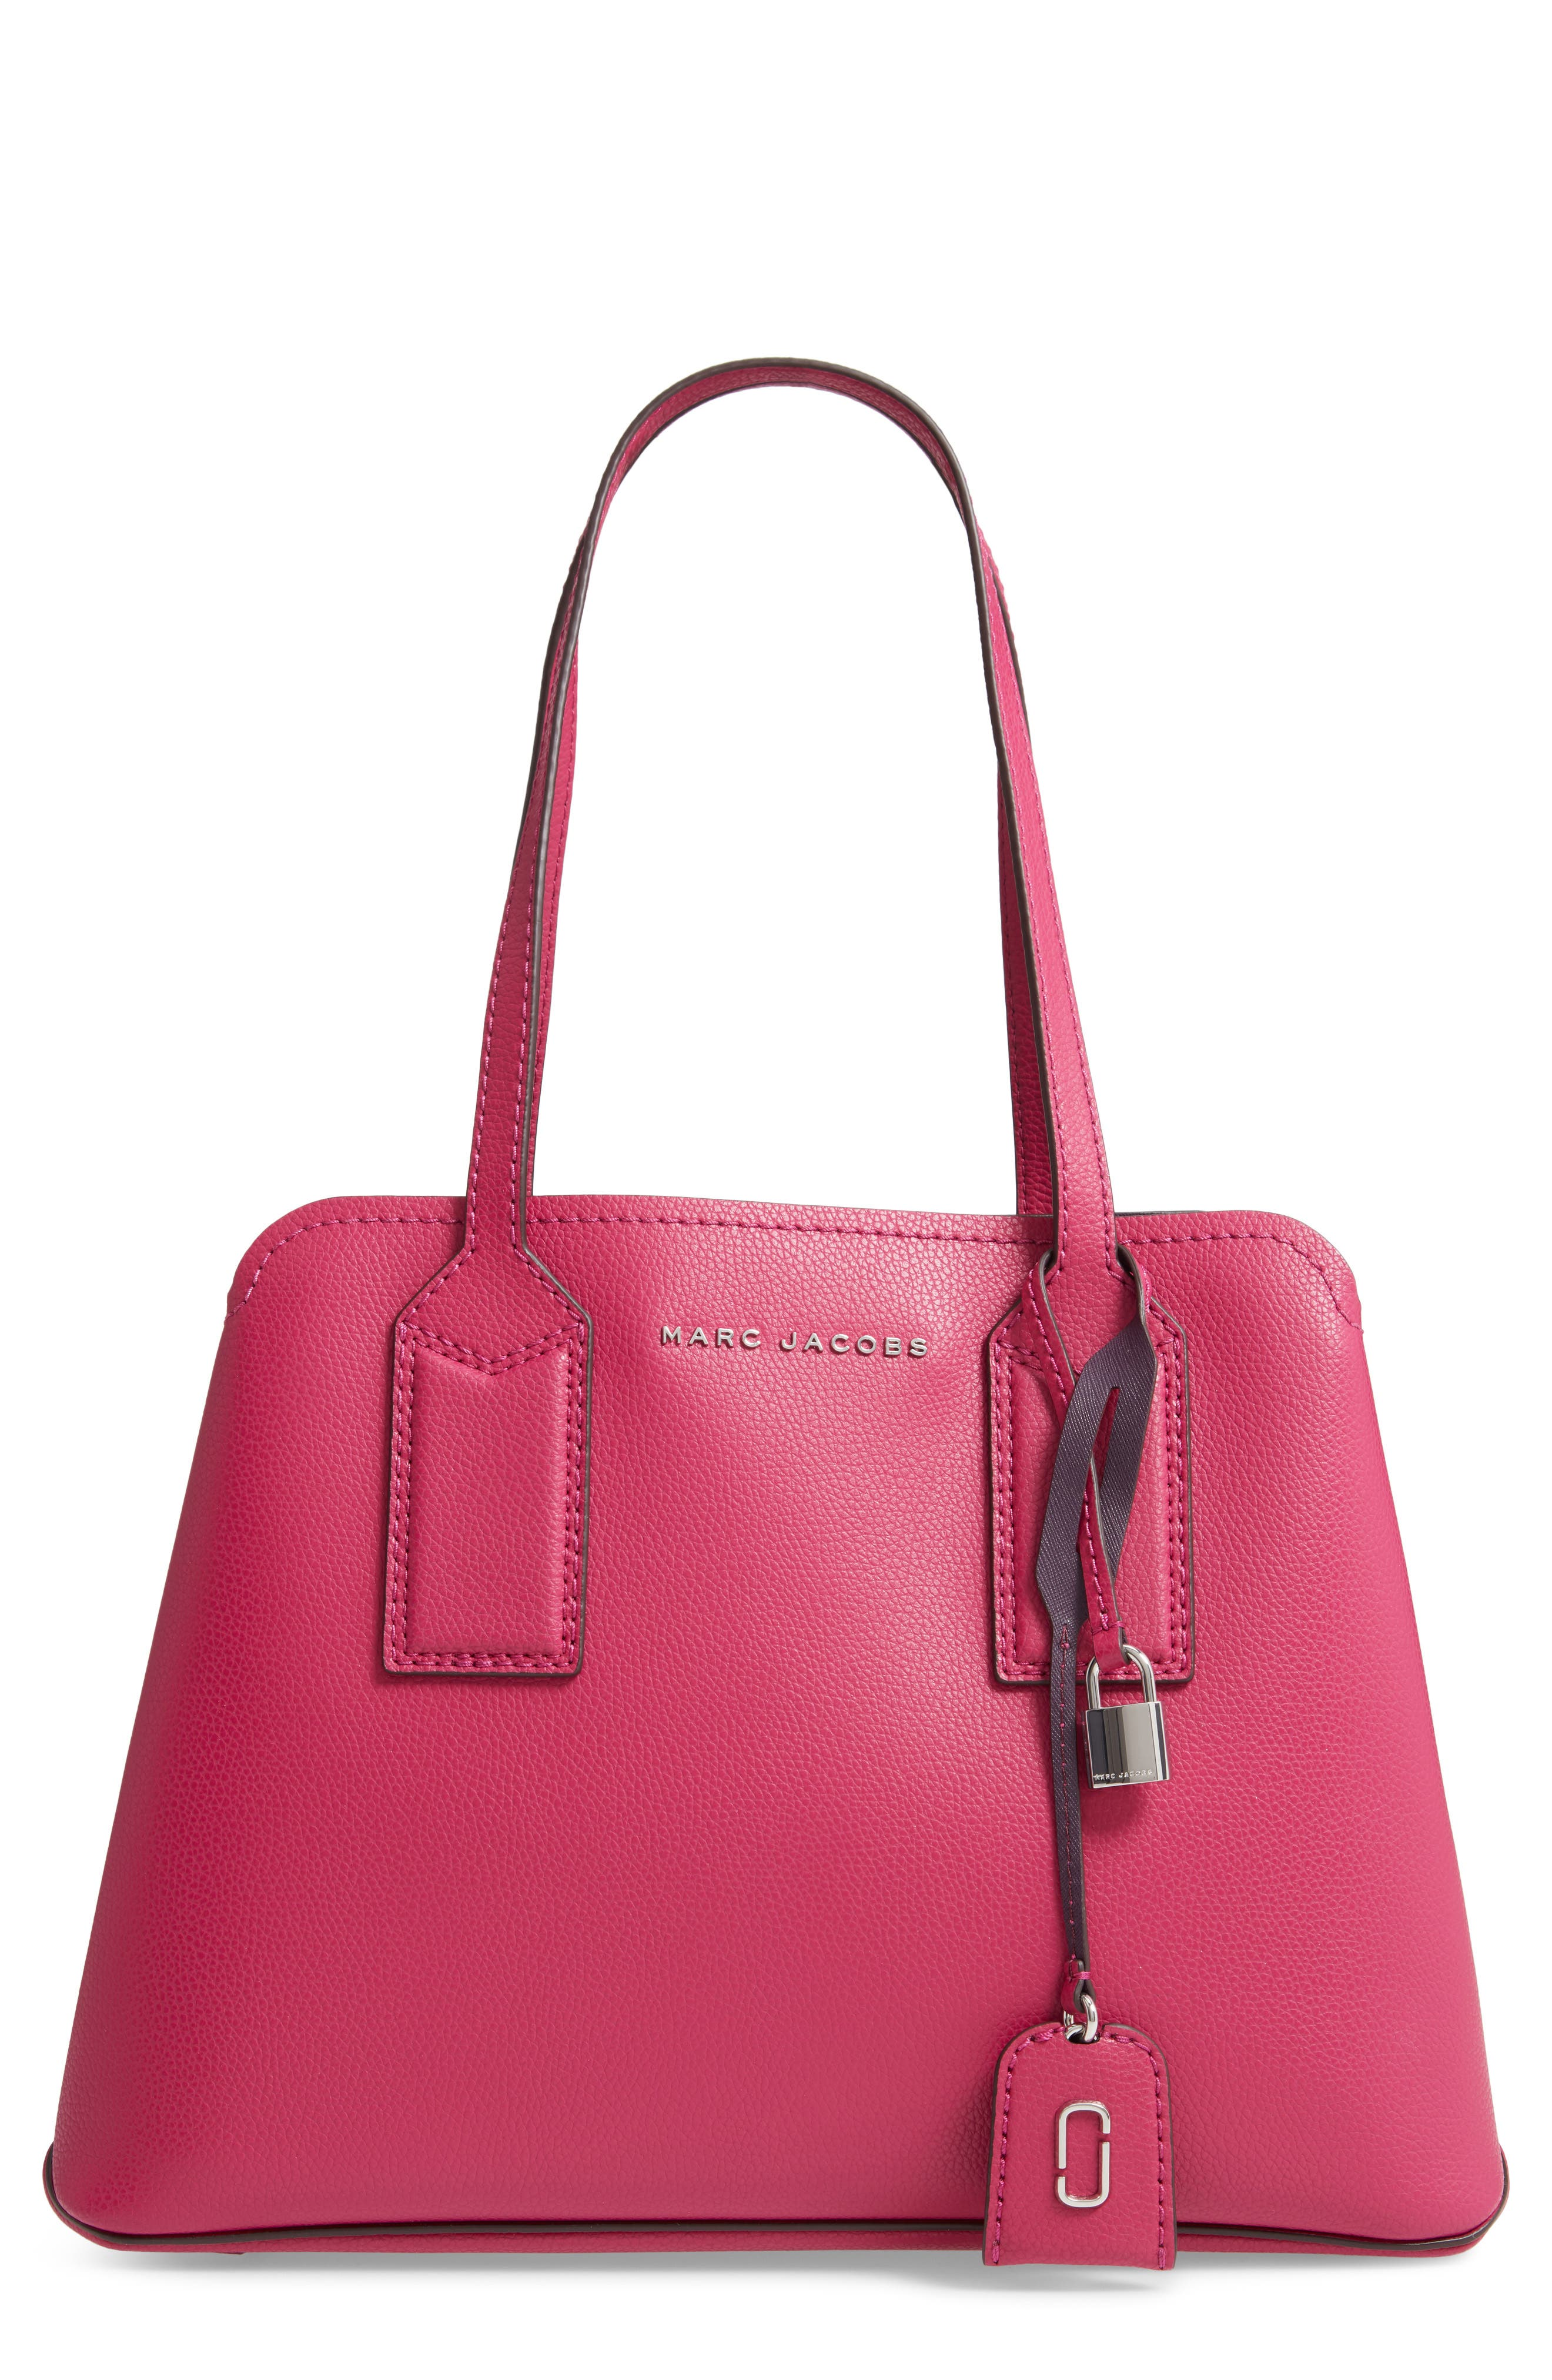 MARC JACOBS THE EDITOR LEATHER TOTE - PURPLE